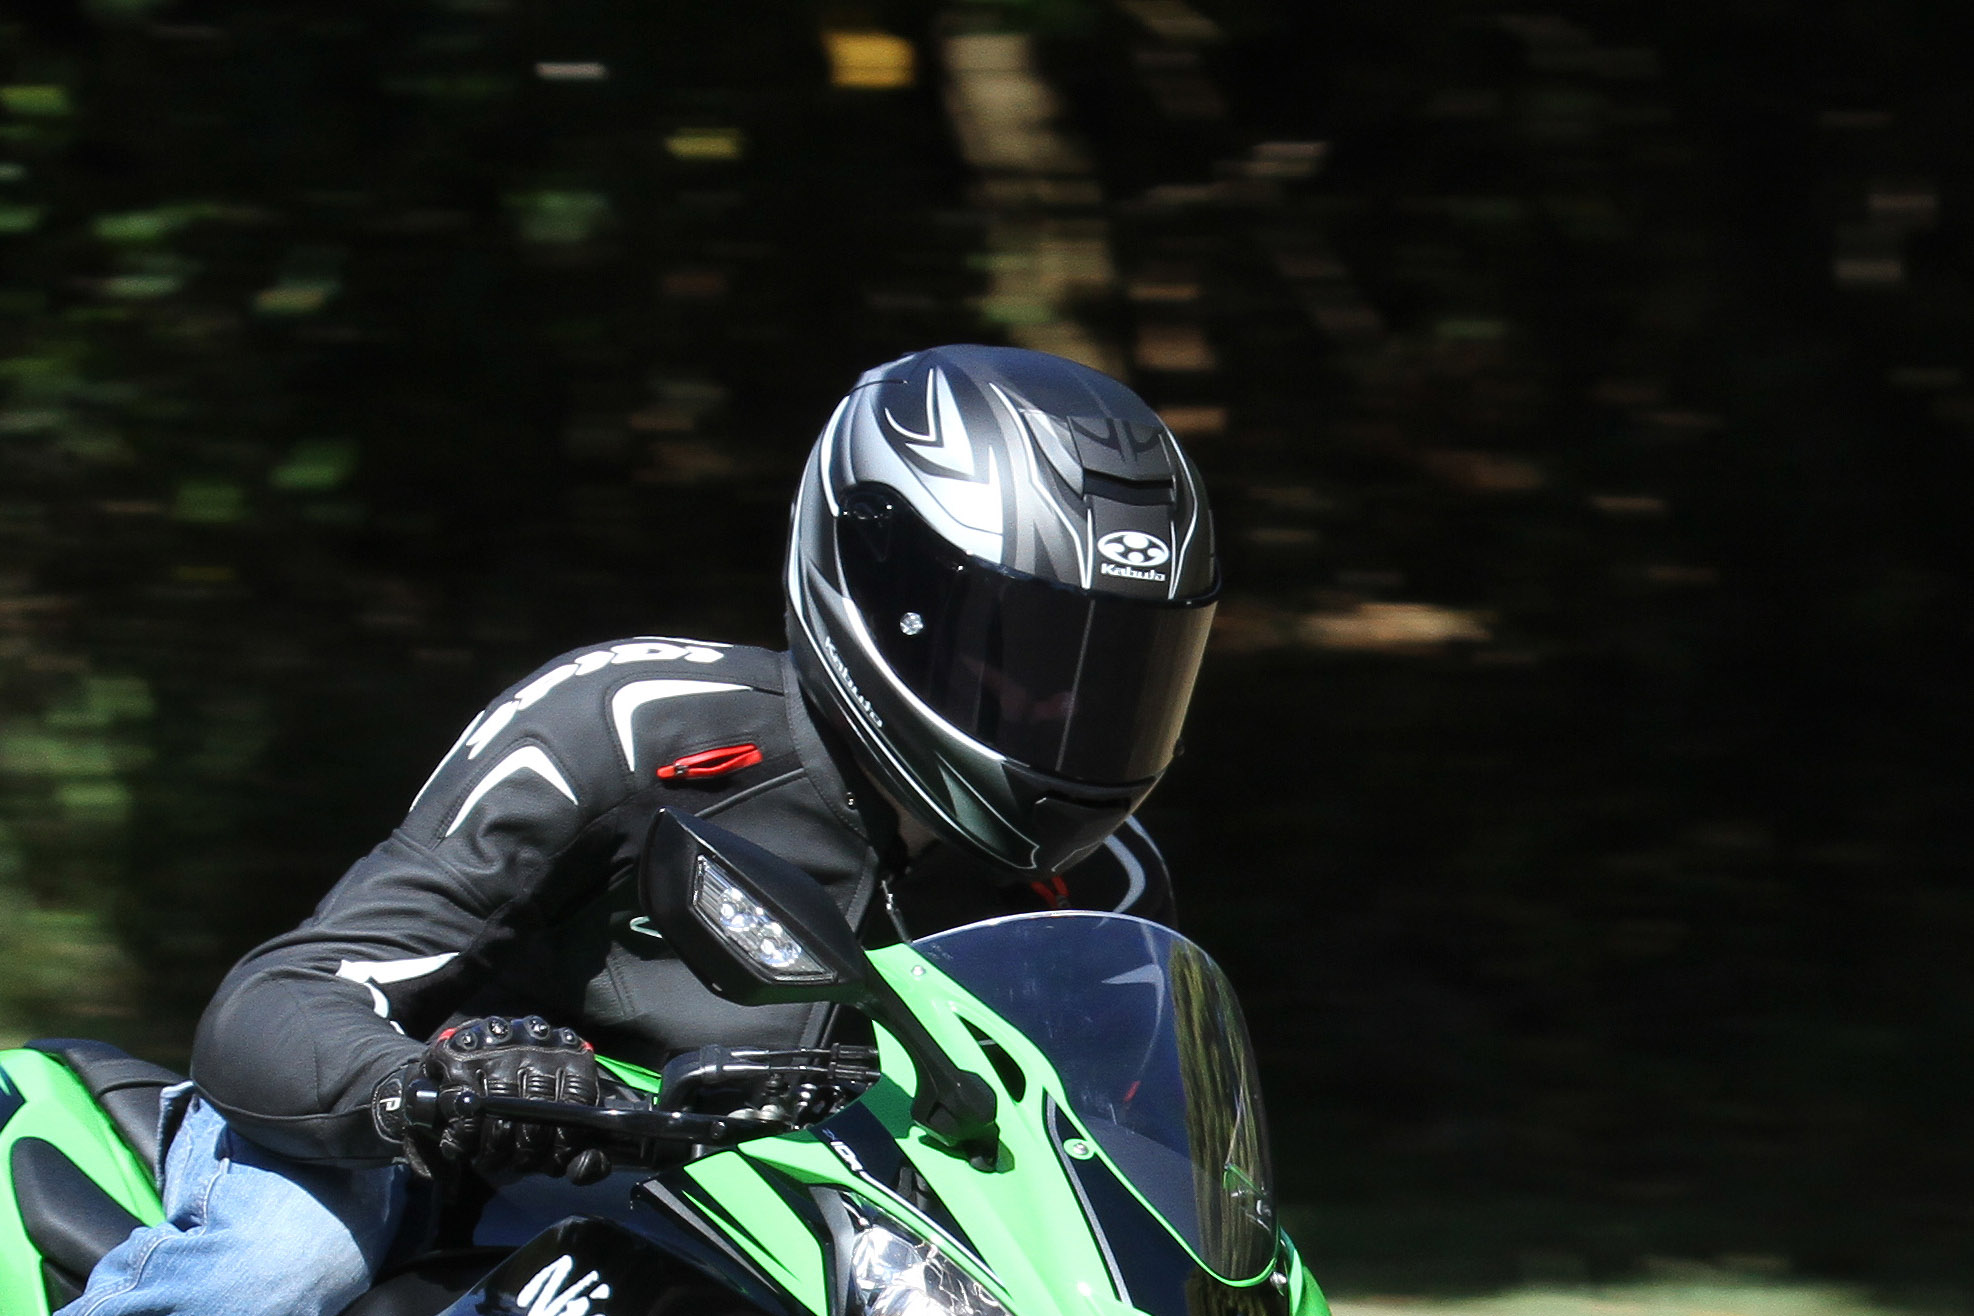 The Kabuto RT-33 was launched in 2014, and has received positive reviews from a number of BikeReview.com.au contributors, on the road, track and drag strip...